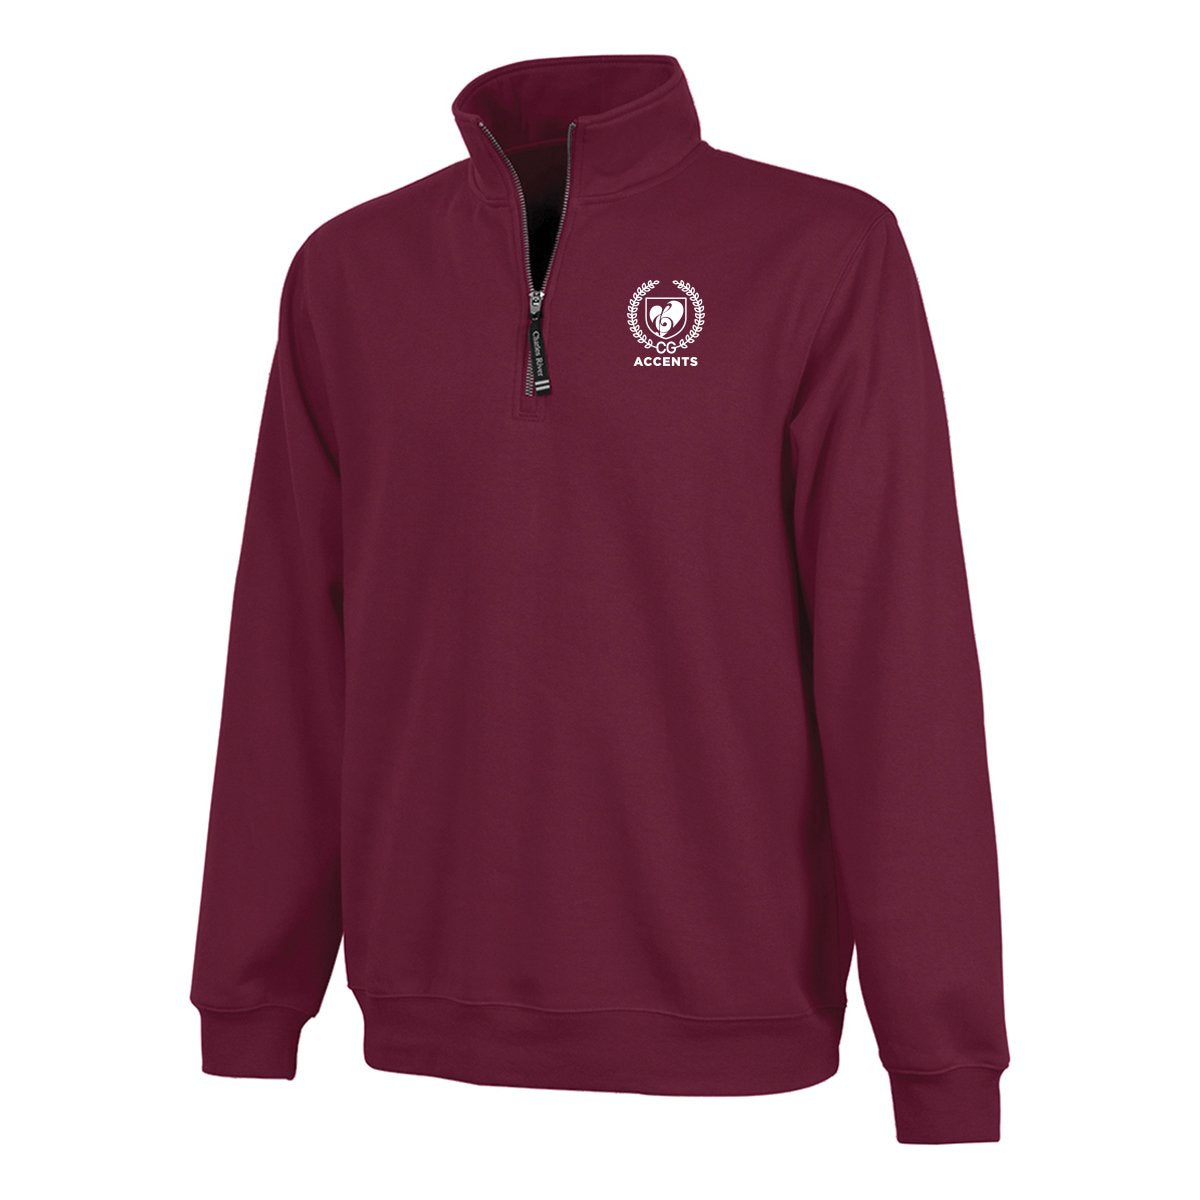 Accents Maroon Quarter Zip